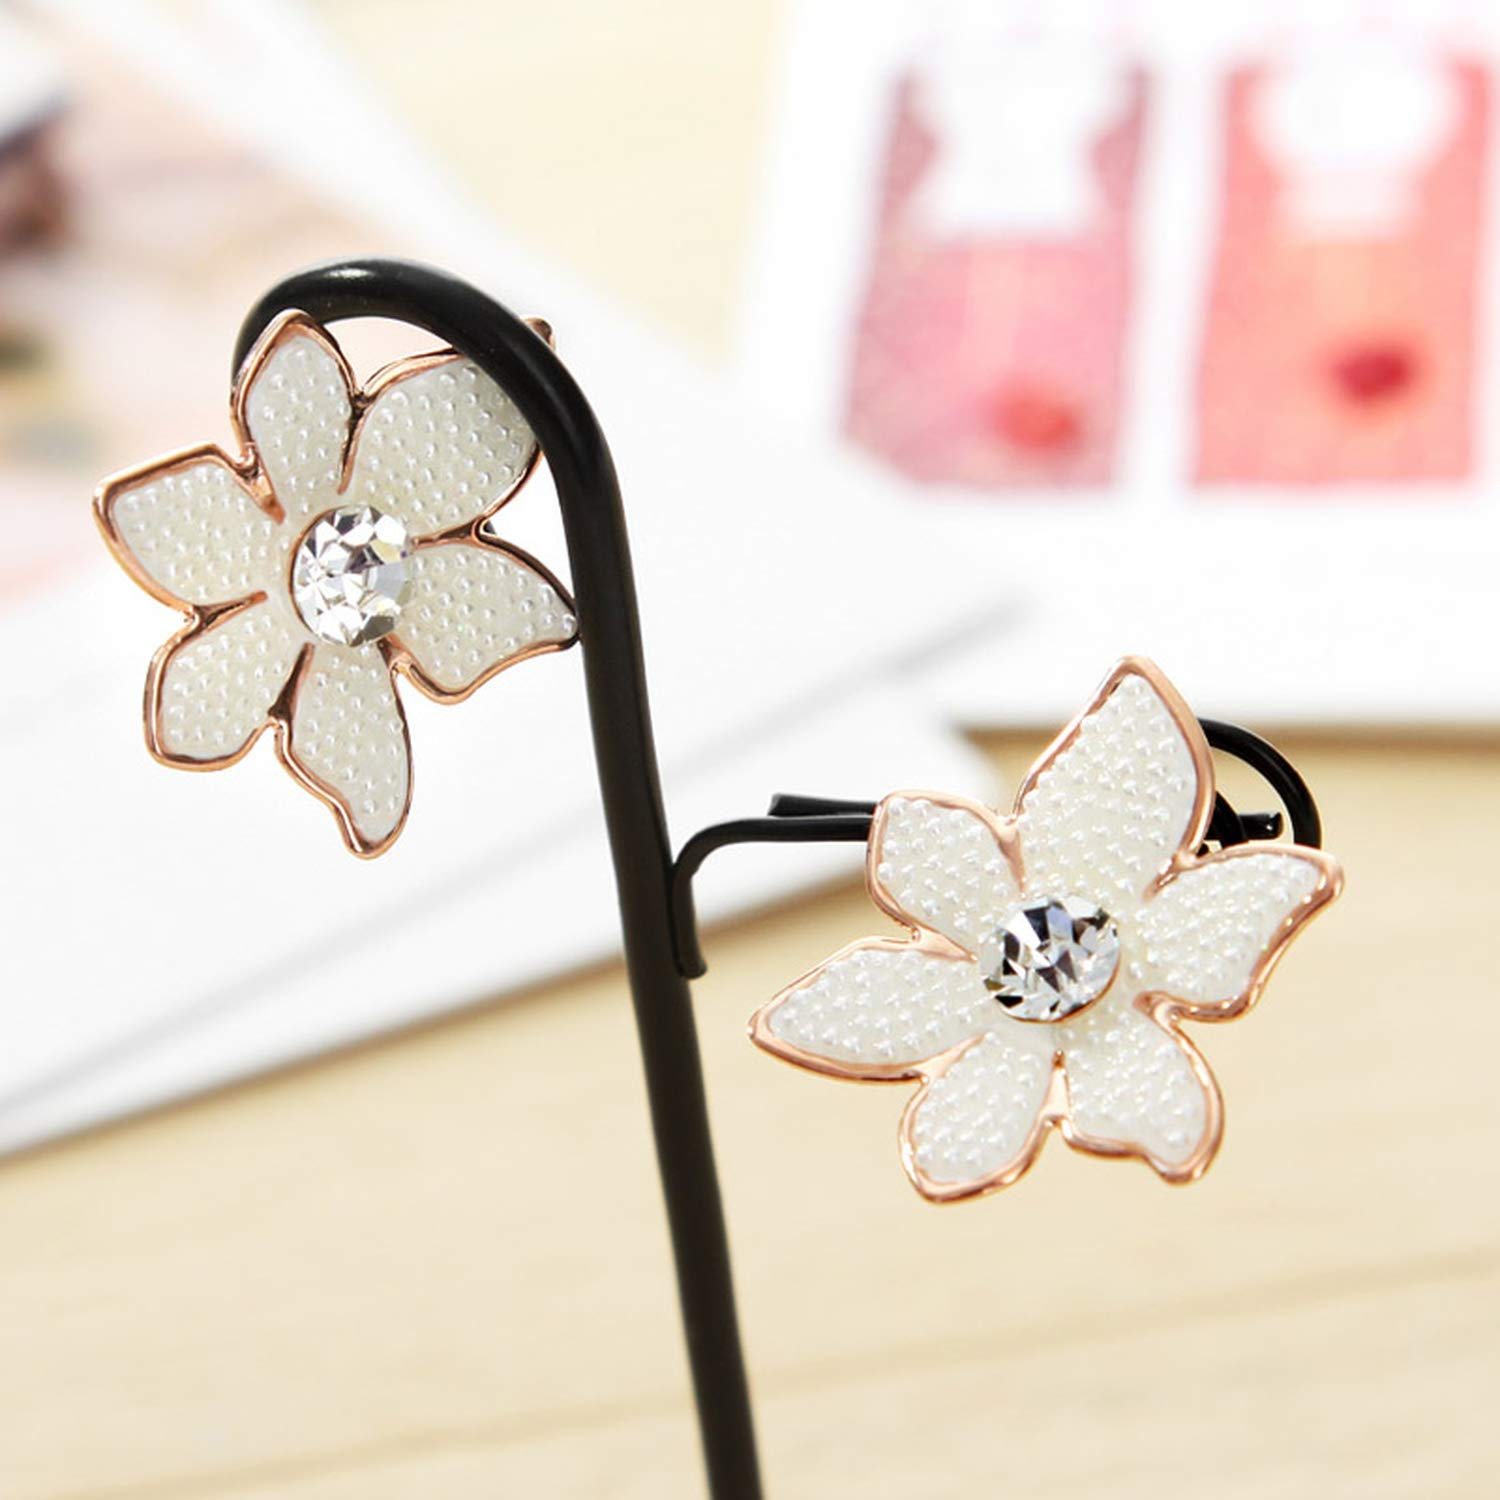 Rose Gold Color Simulatedrl Romantic Stud Earrings Jewelry Gift 2019 New